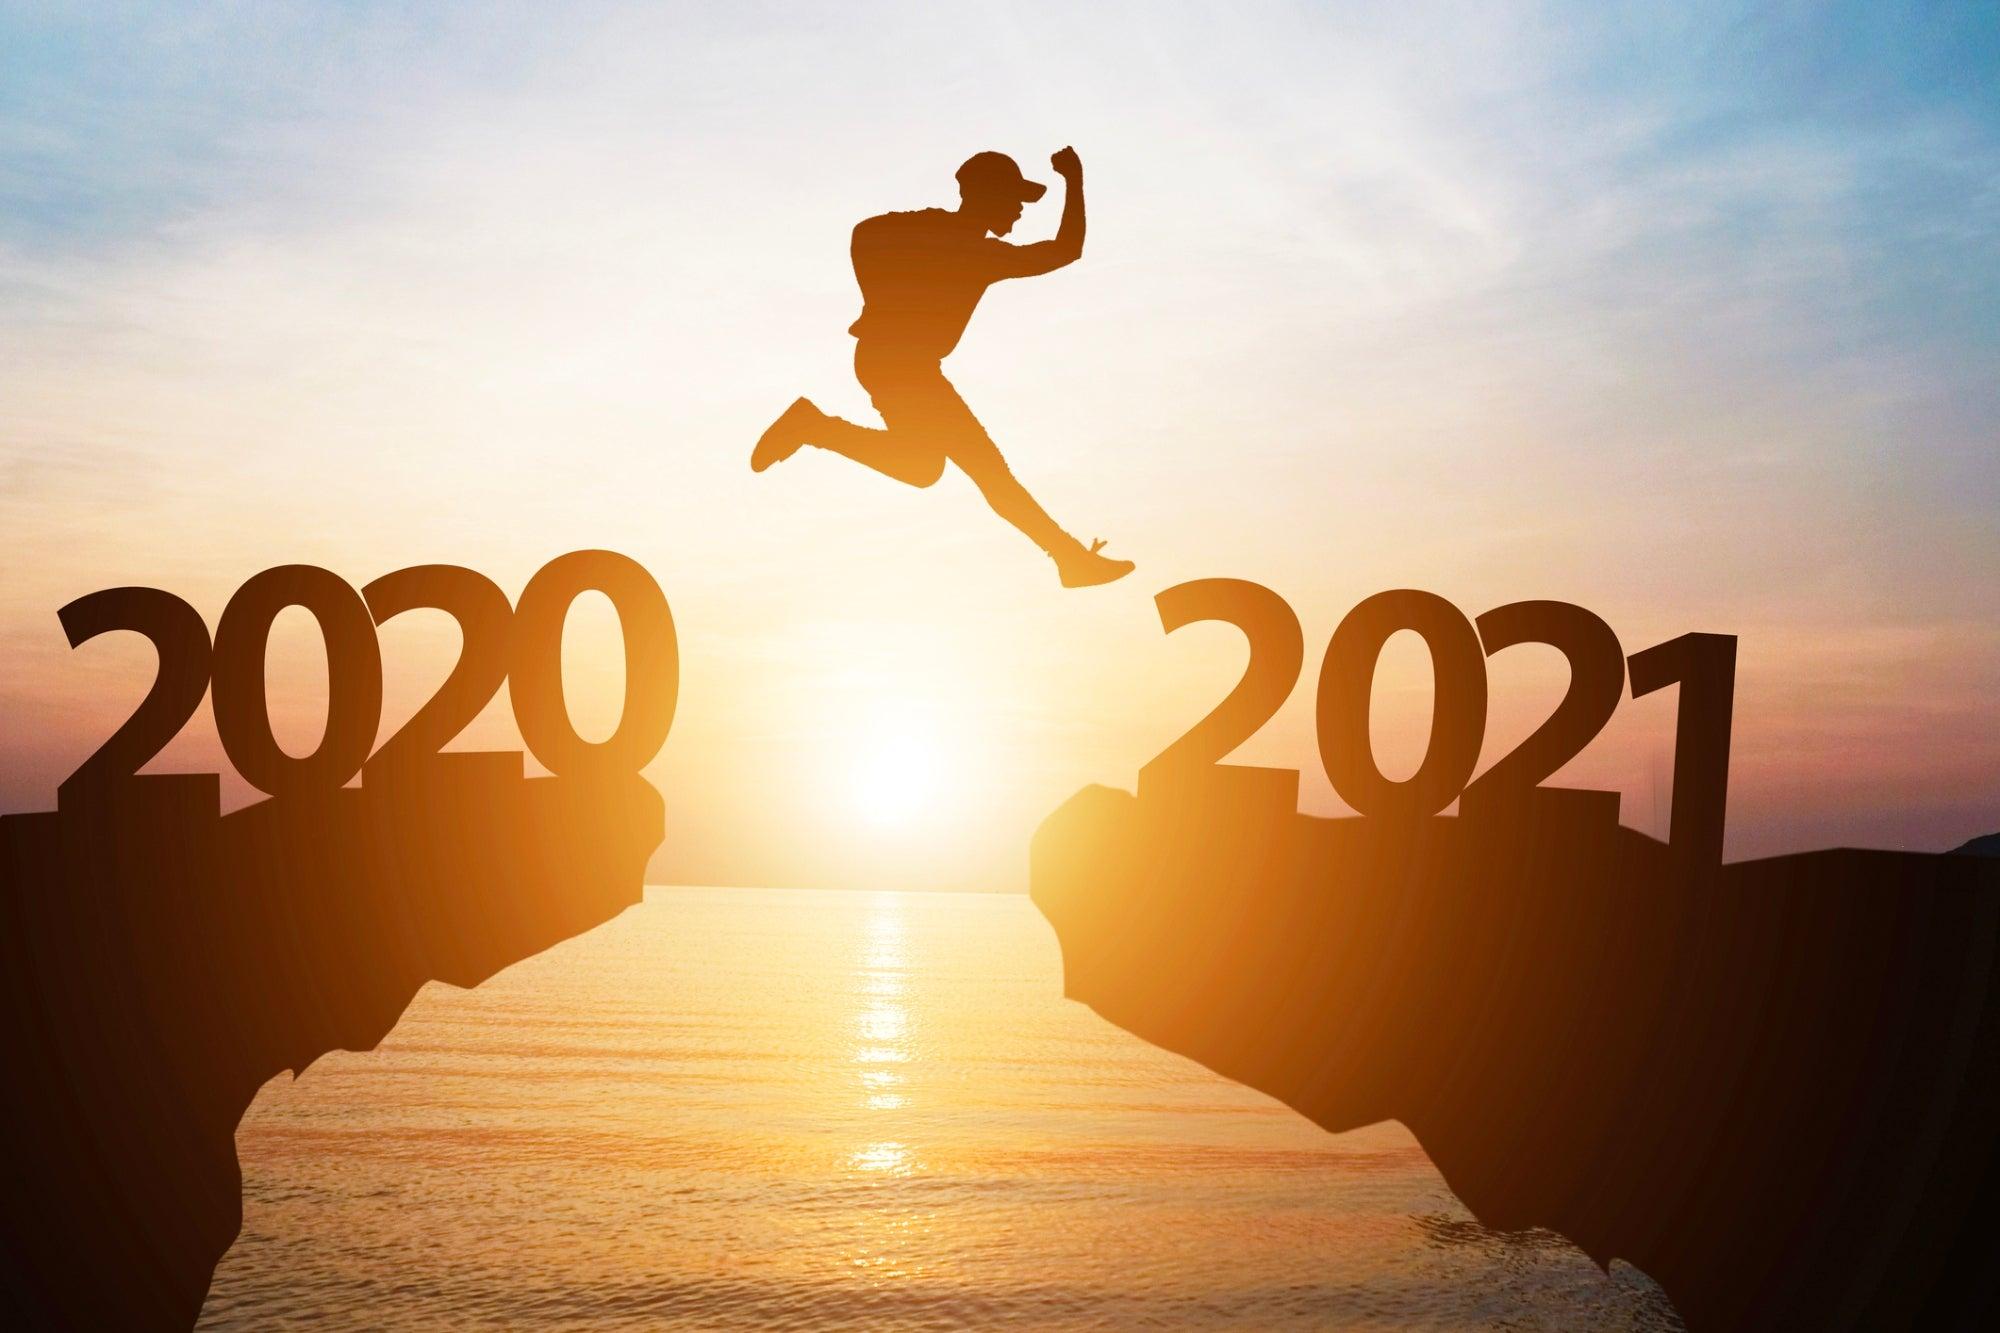 Entrepreneurial Takeaways From 2020 to Guide Your Next Big Move